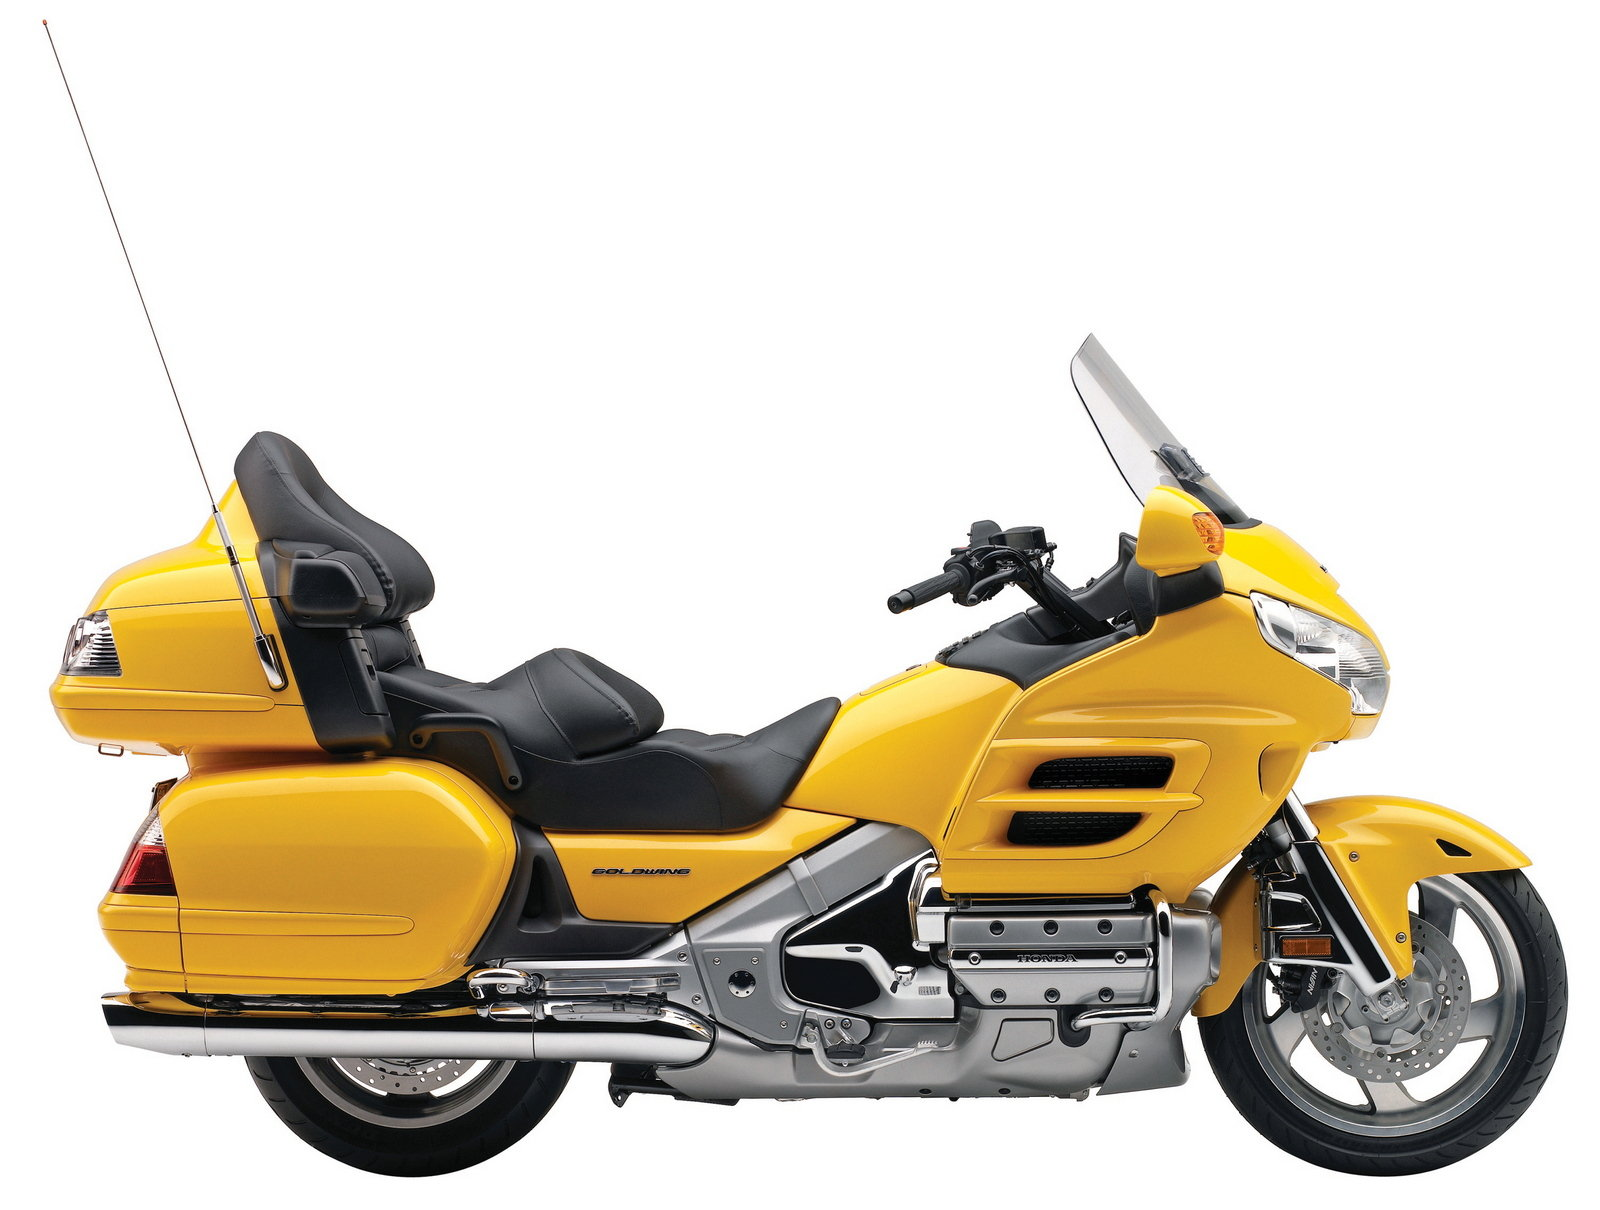 2009 Honda Gold Wing Review Top Speed